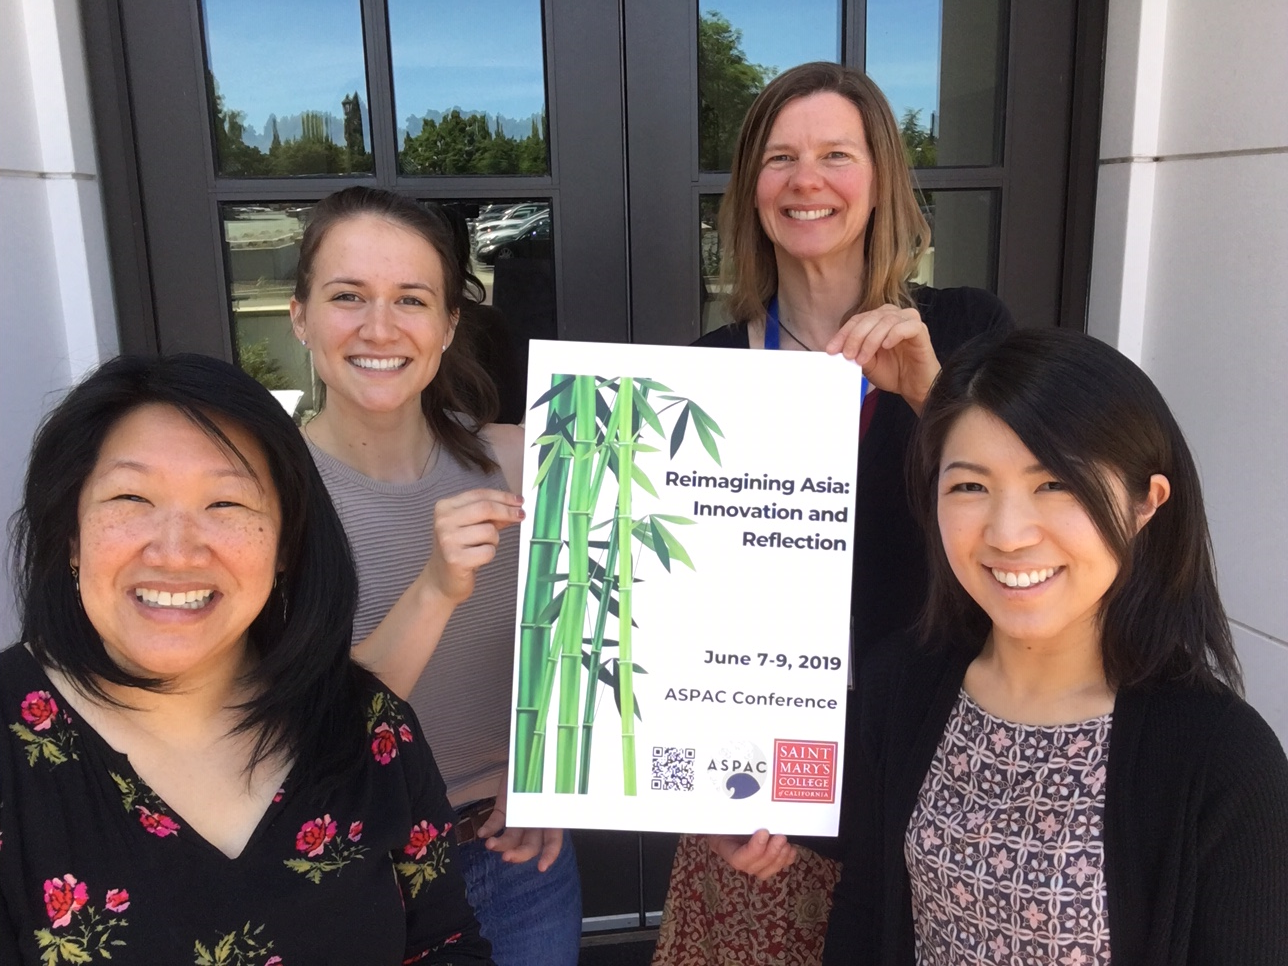 ASPAC Steering Committee (from left to right):Jennifer Heung (Anthropology), Isabella Navarro (Conference Local Arrangements Chair), Elena Songster (History and Conference Chair), Makiko Imamura (Communication).